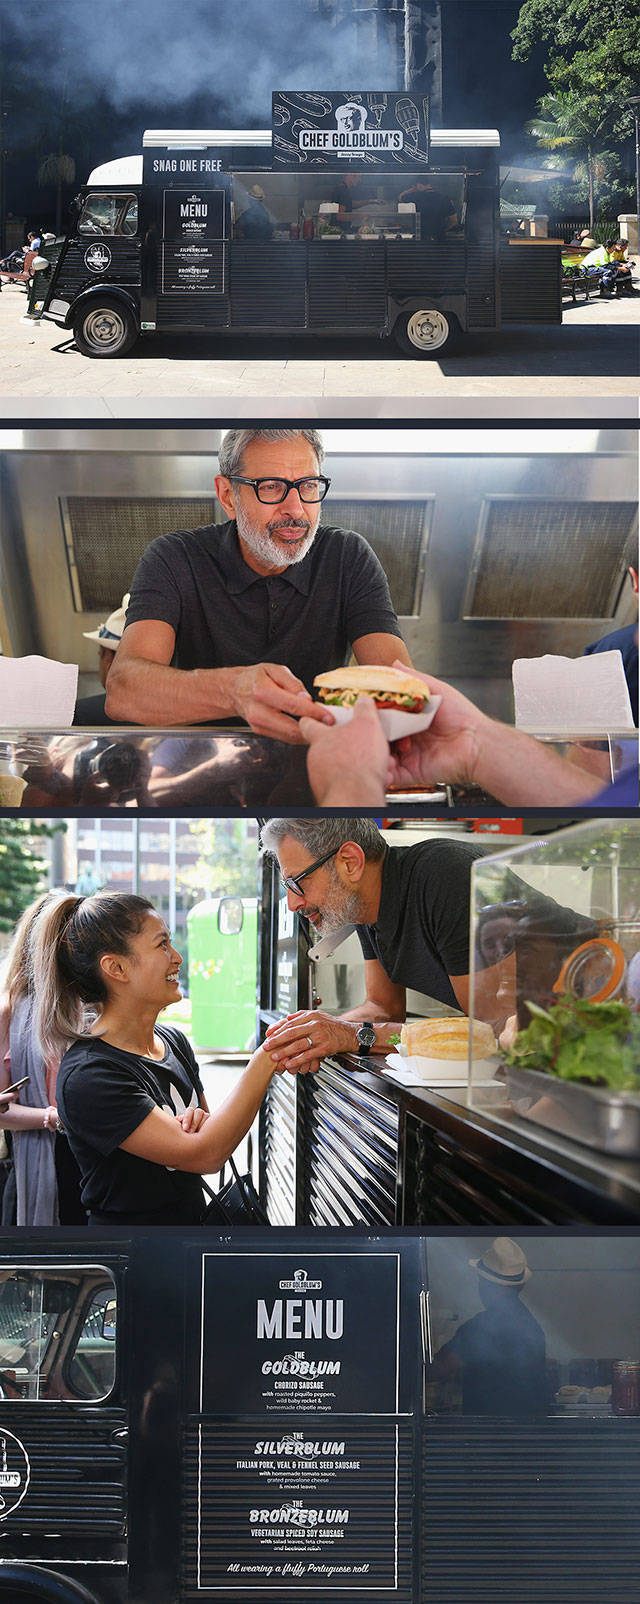 46 - Amazing food truck in LA that is Chef Goldblum and run by Jeff Goldblum